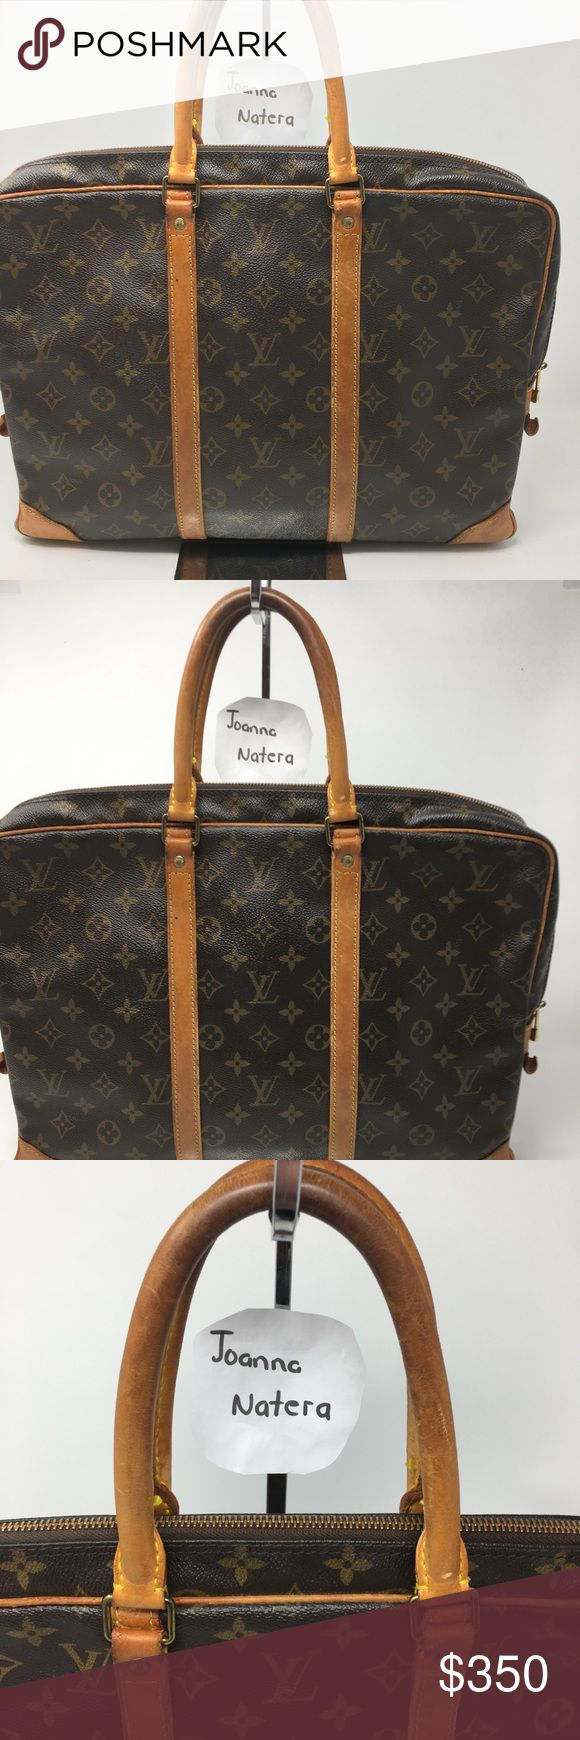 LOUIS Vuitton Porte document Briefcase Honey patina  Wear in handles  Inside it's clean but minor scratches. Please see pic Has different compartments  Pen compartment and Agenda or books compartments  Vaschetta has some water spots  Measurements W15.7 x 12 x 2.5 Date code V.I 0971 Louis Vuitton Bags Laptop Bags